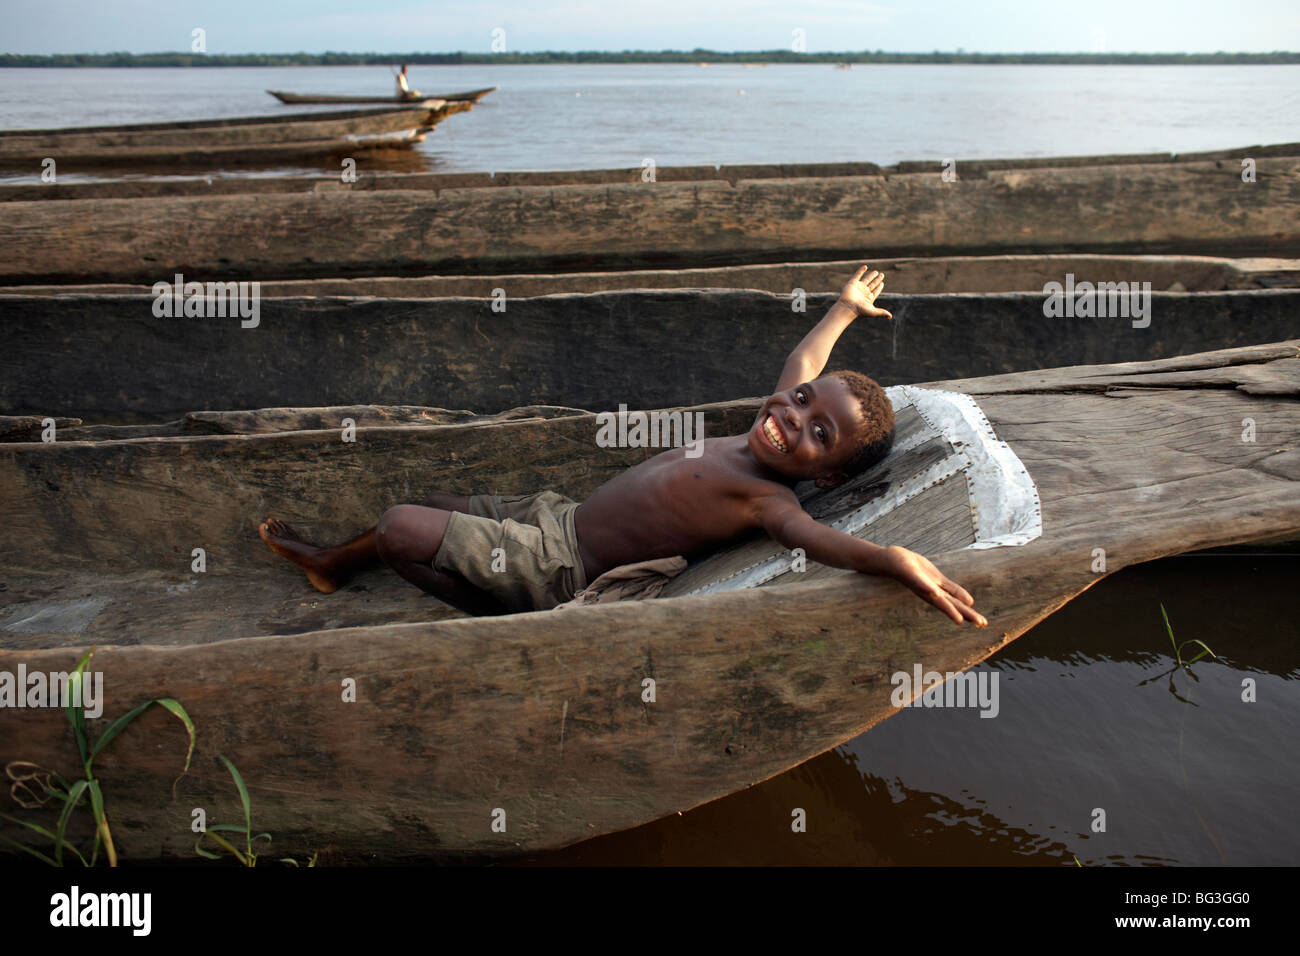 A boy relaxes in a dugout canoe on the Congo River, Yangambi, Democratic Republic of Congo, Africa - Stock Image